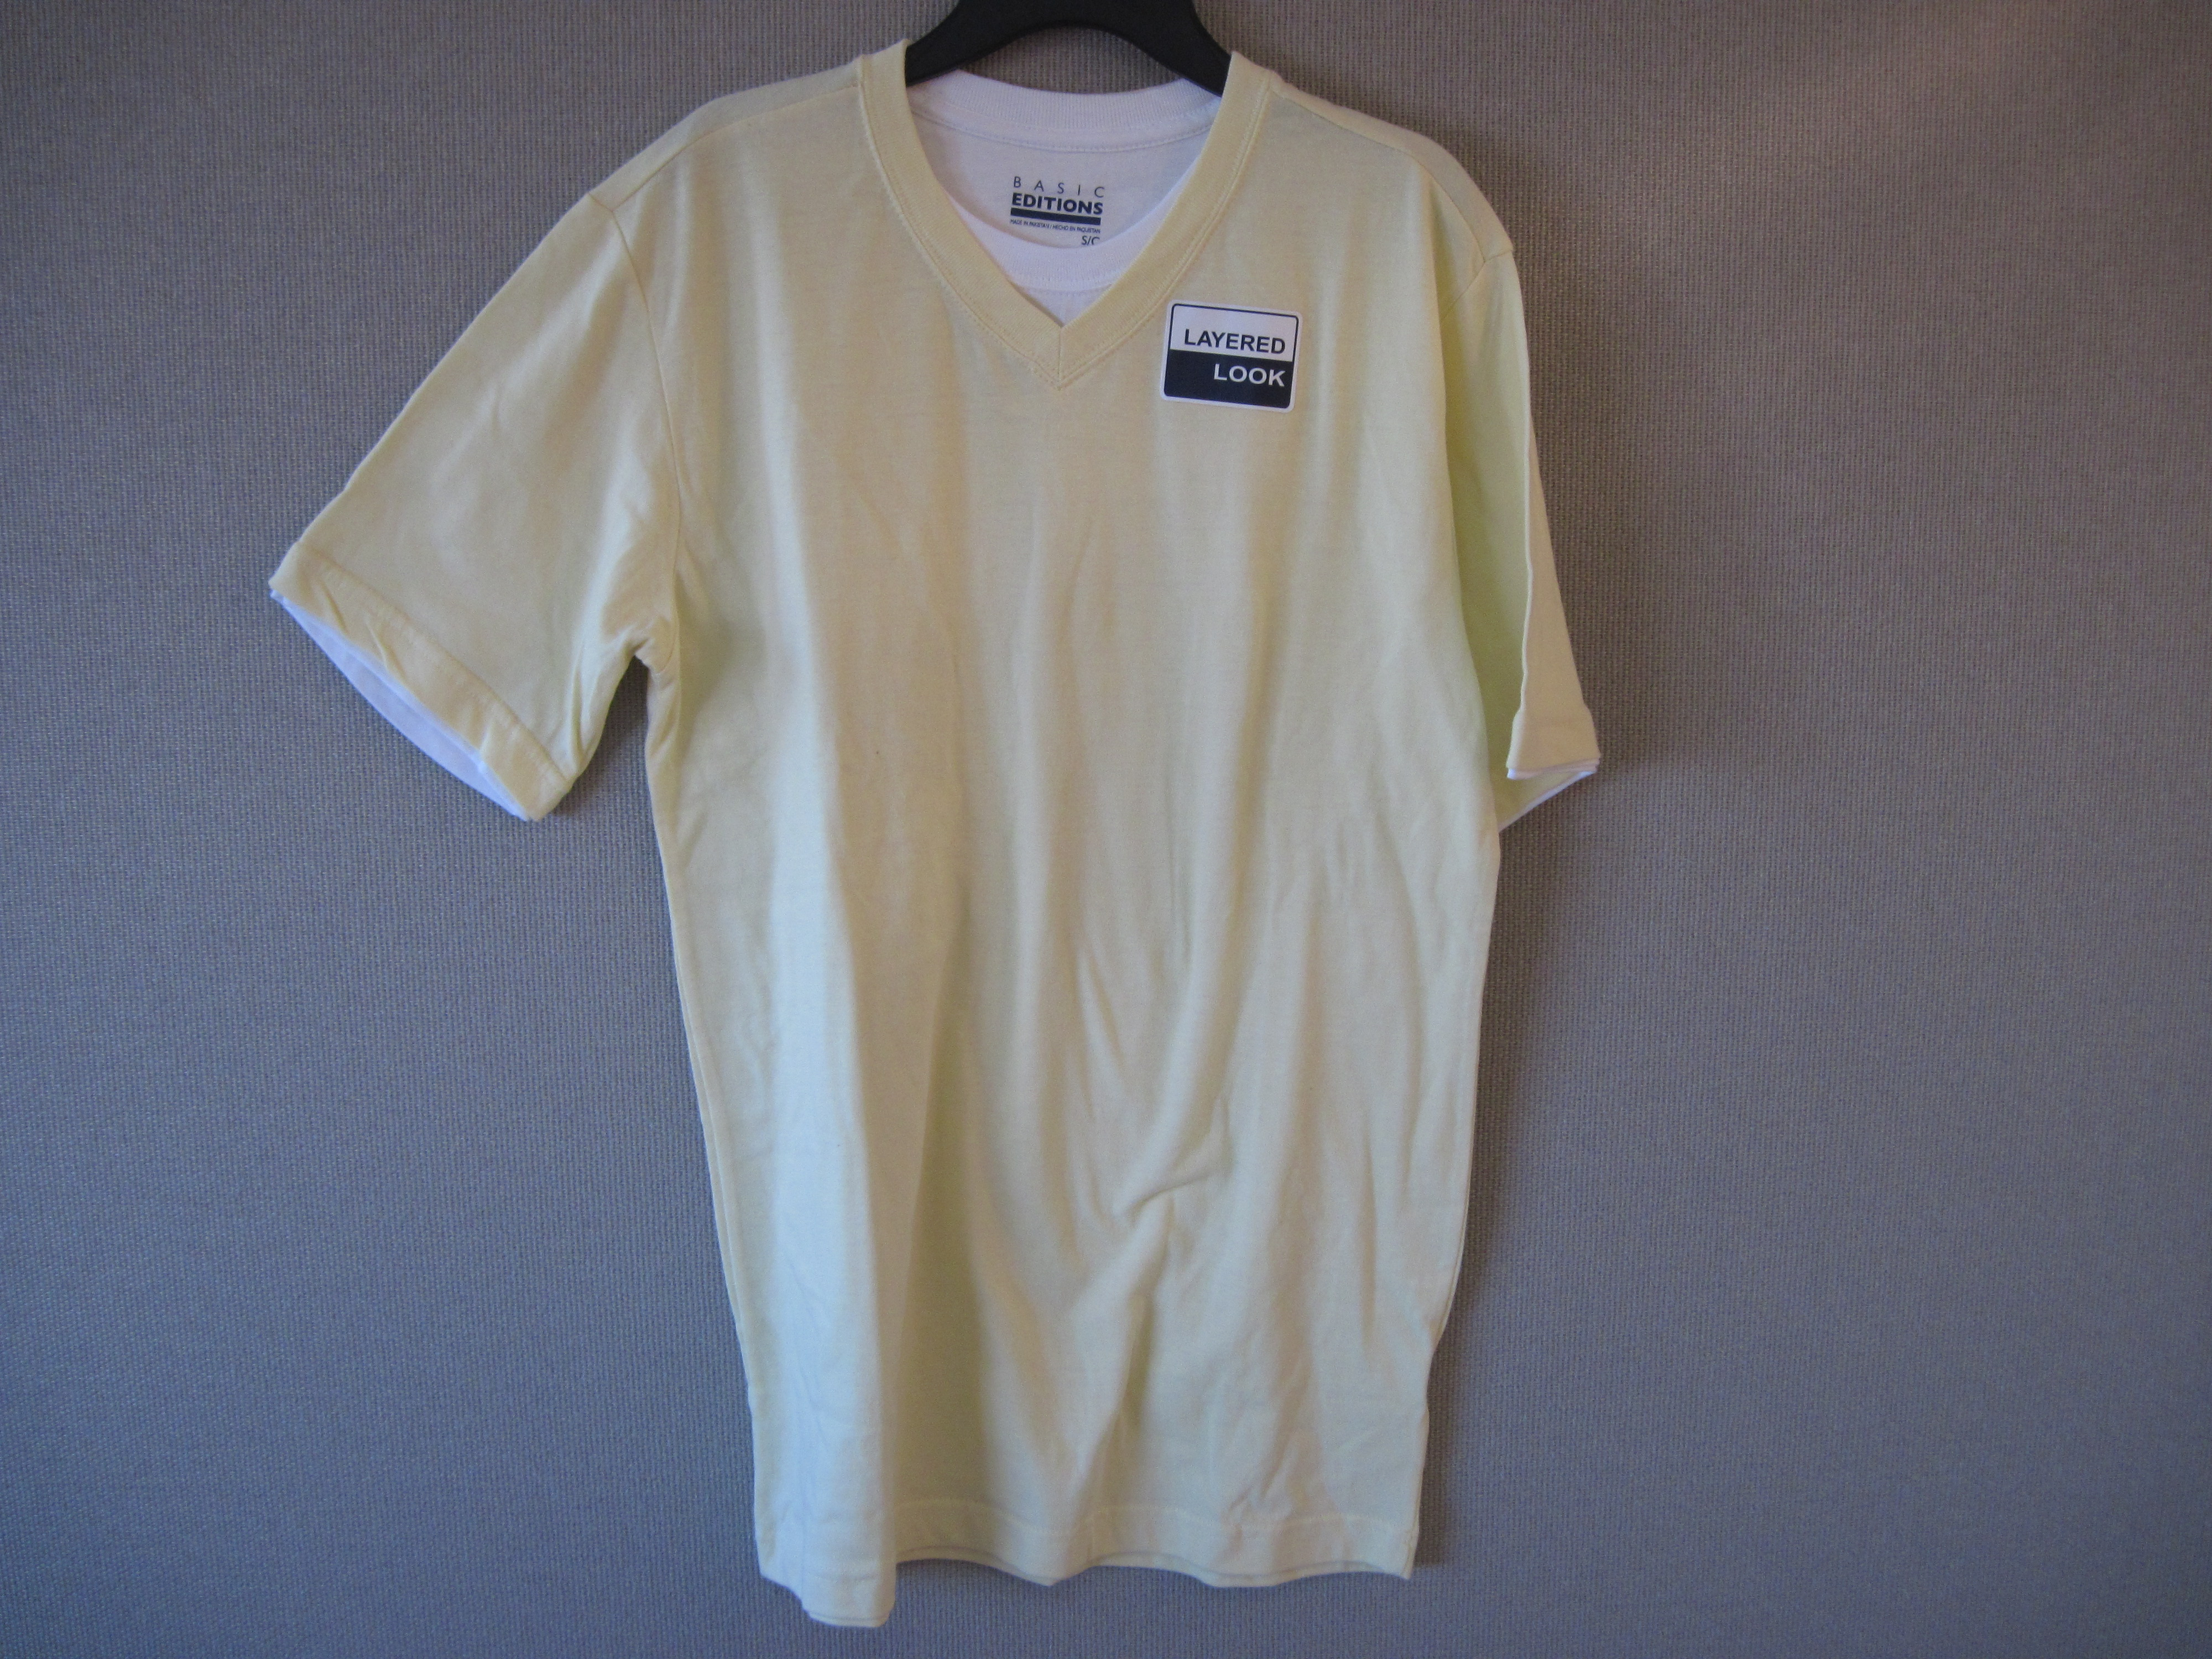 Basic Editions Sz Small Short Sleeve T-Shirt (yellow,layered)